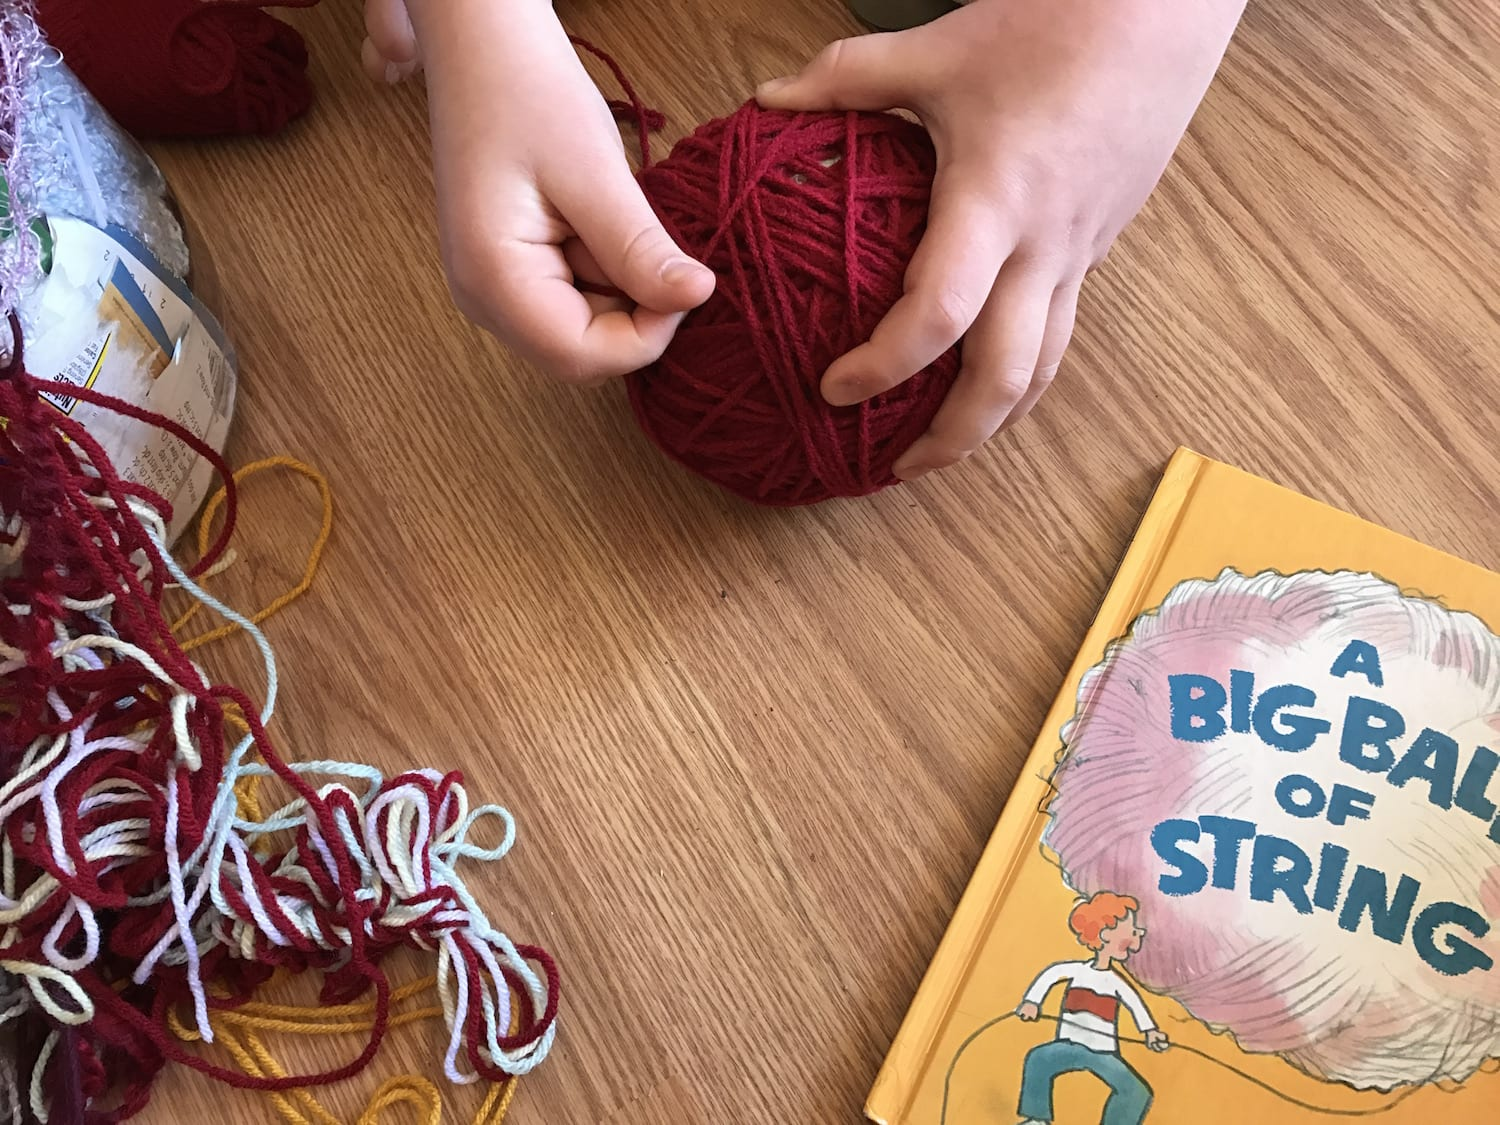 A Big Ball of String Kids Activity